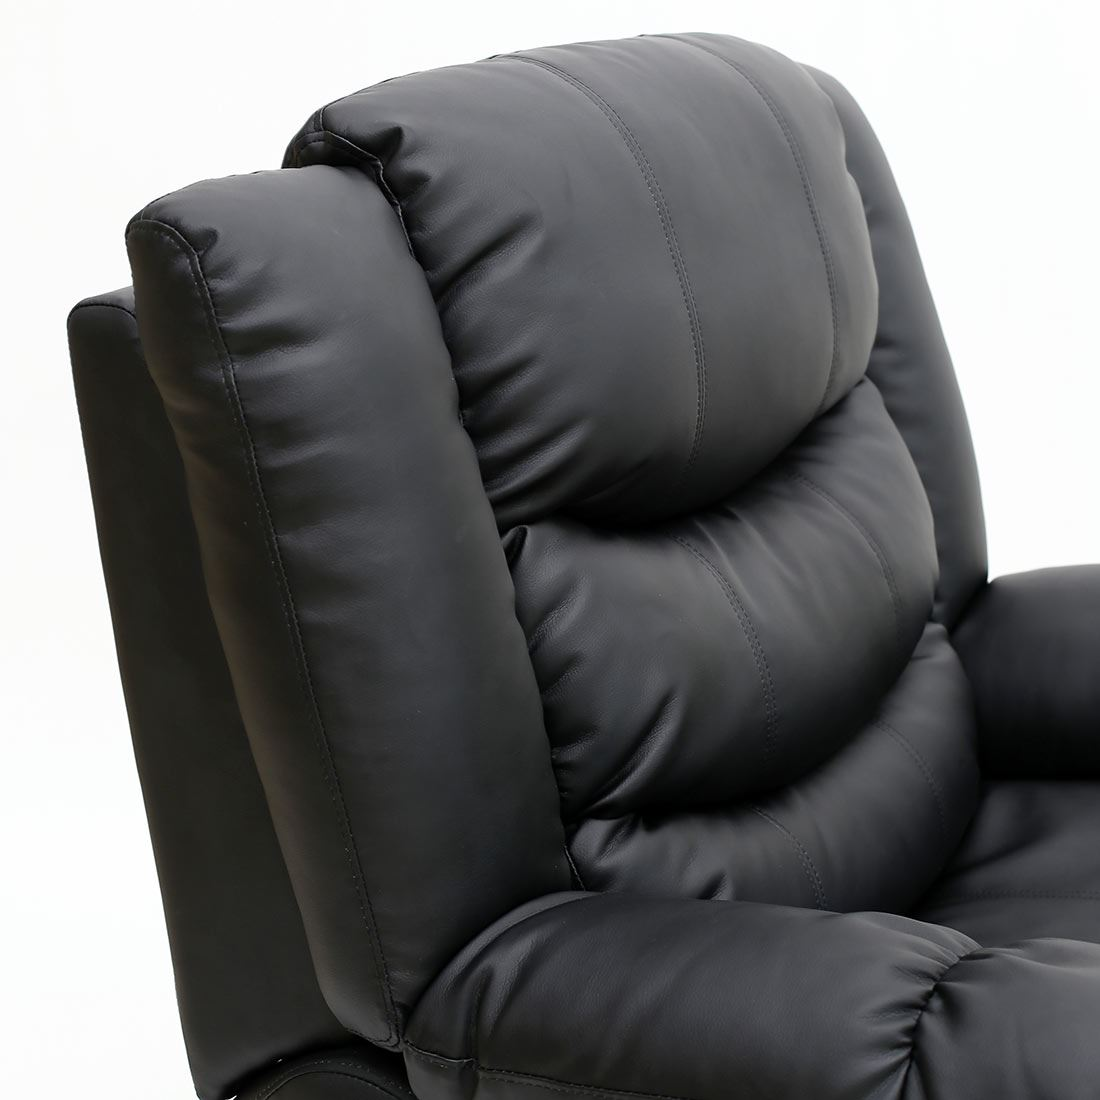 gaming lounge chair ergonomic office chairs uk seattle leather recliner armchair sofa home